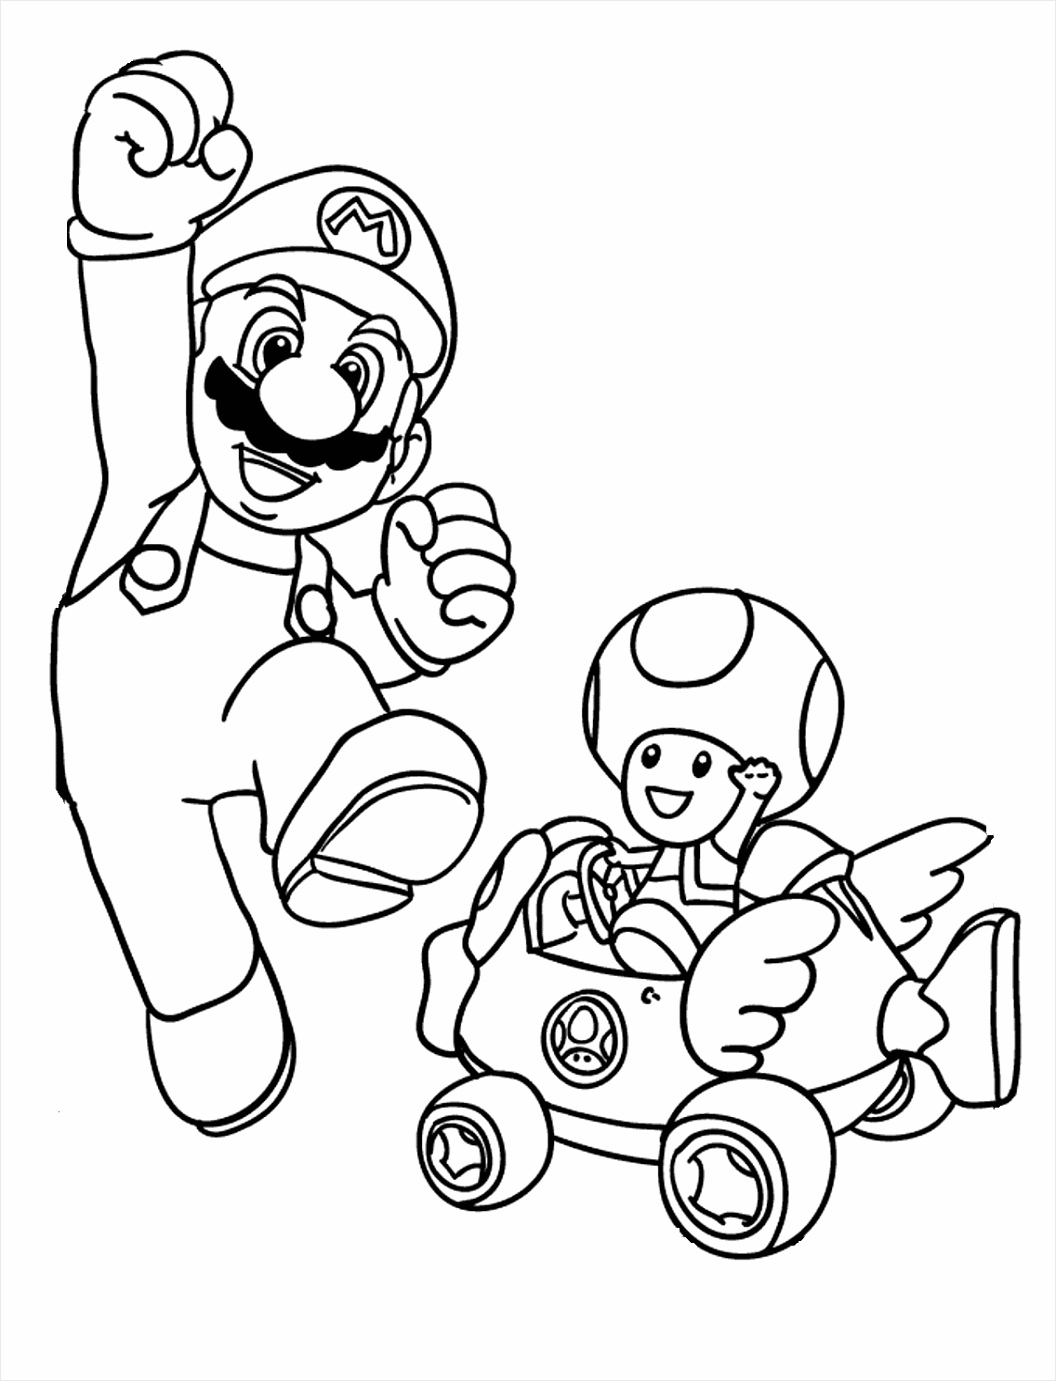 mario kart characters coloring pages free printable mario kart coloring pages for kids cool2bkids kart mario coloring pages characters uakjy